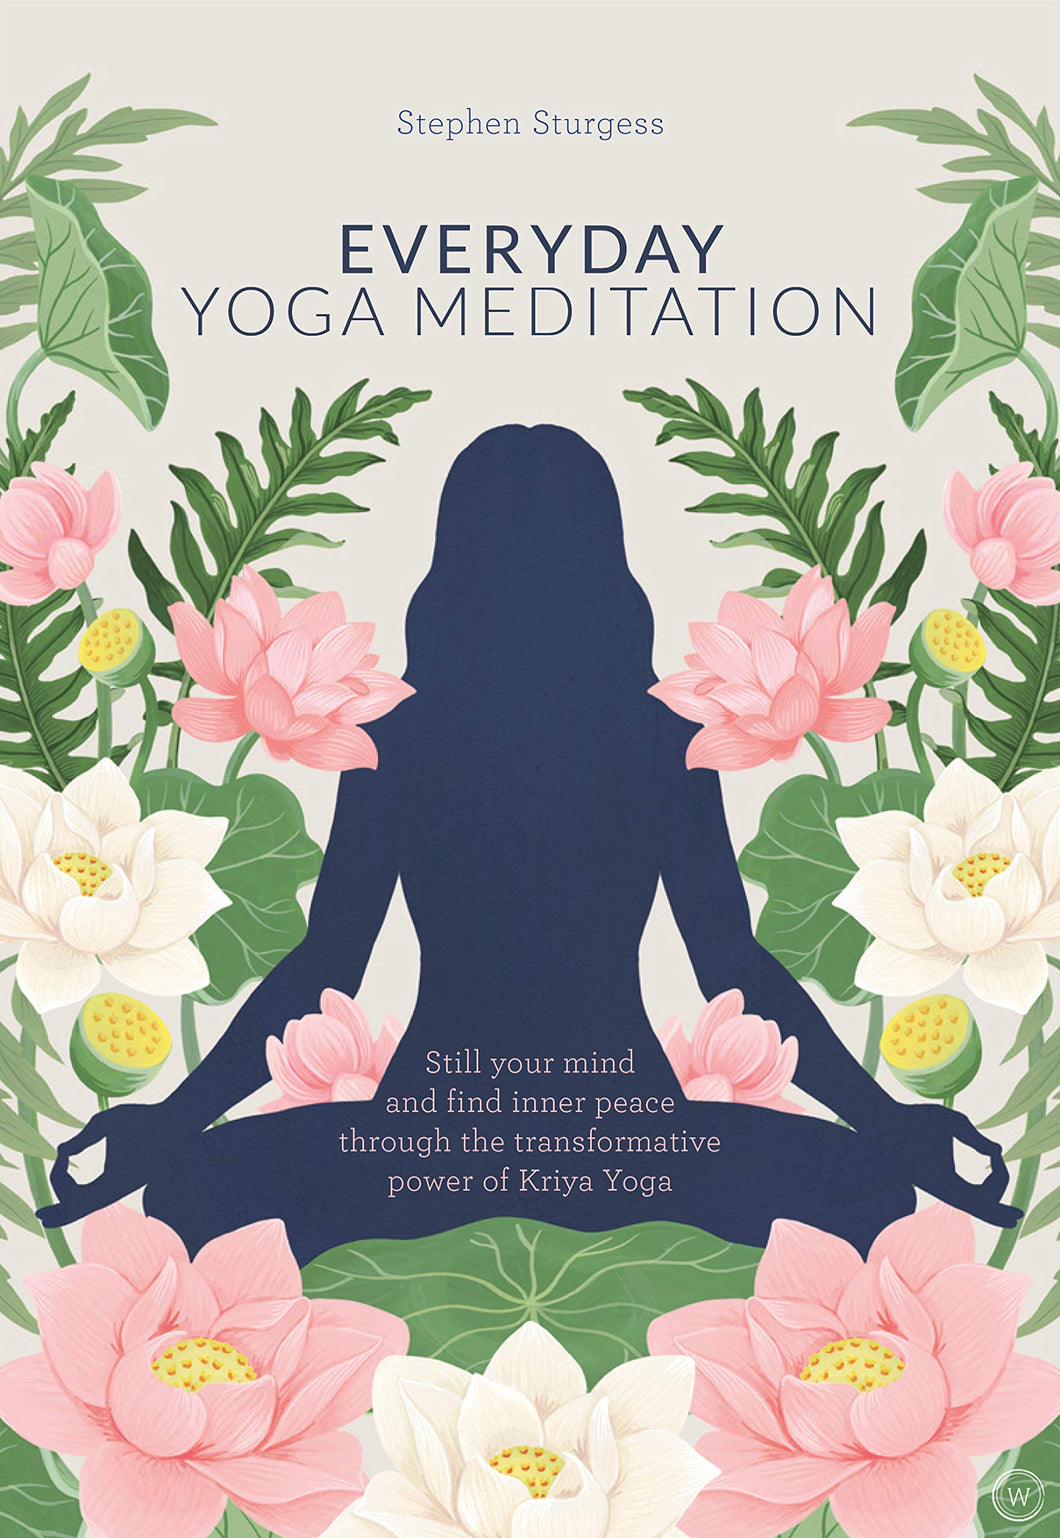 Everyday Yoga Meditation: Still Your Mind and Find Inner Peace Through the Transformative Power of Kriya Yoga